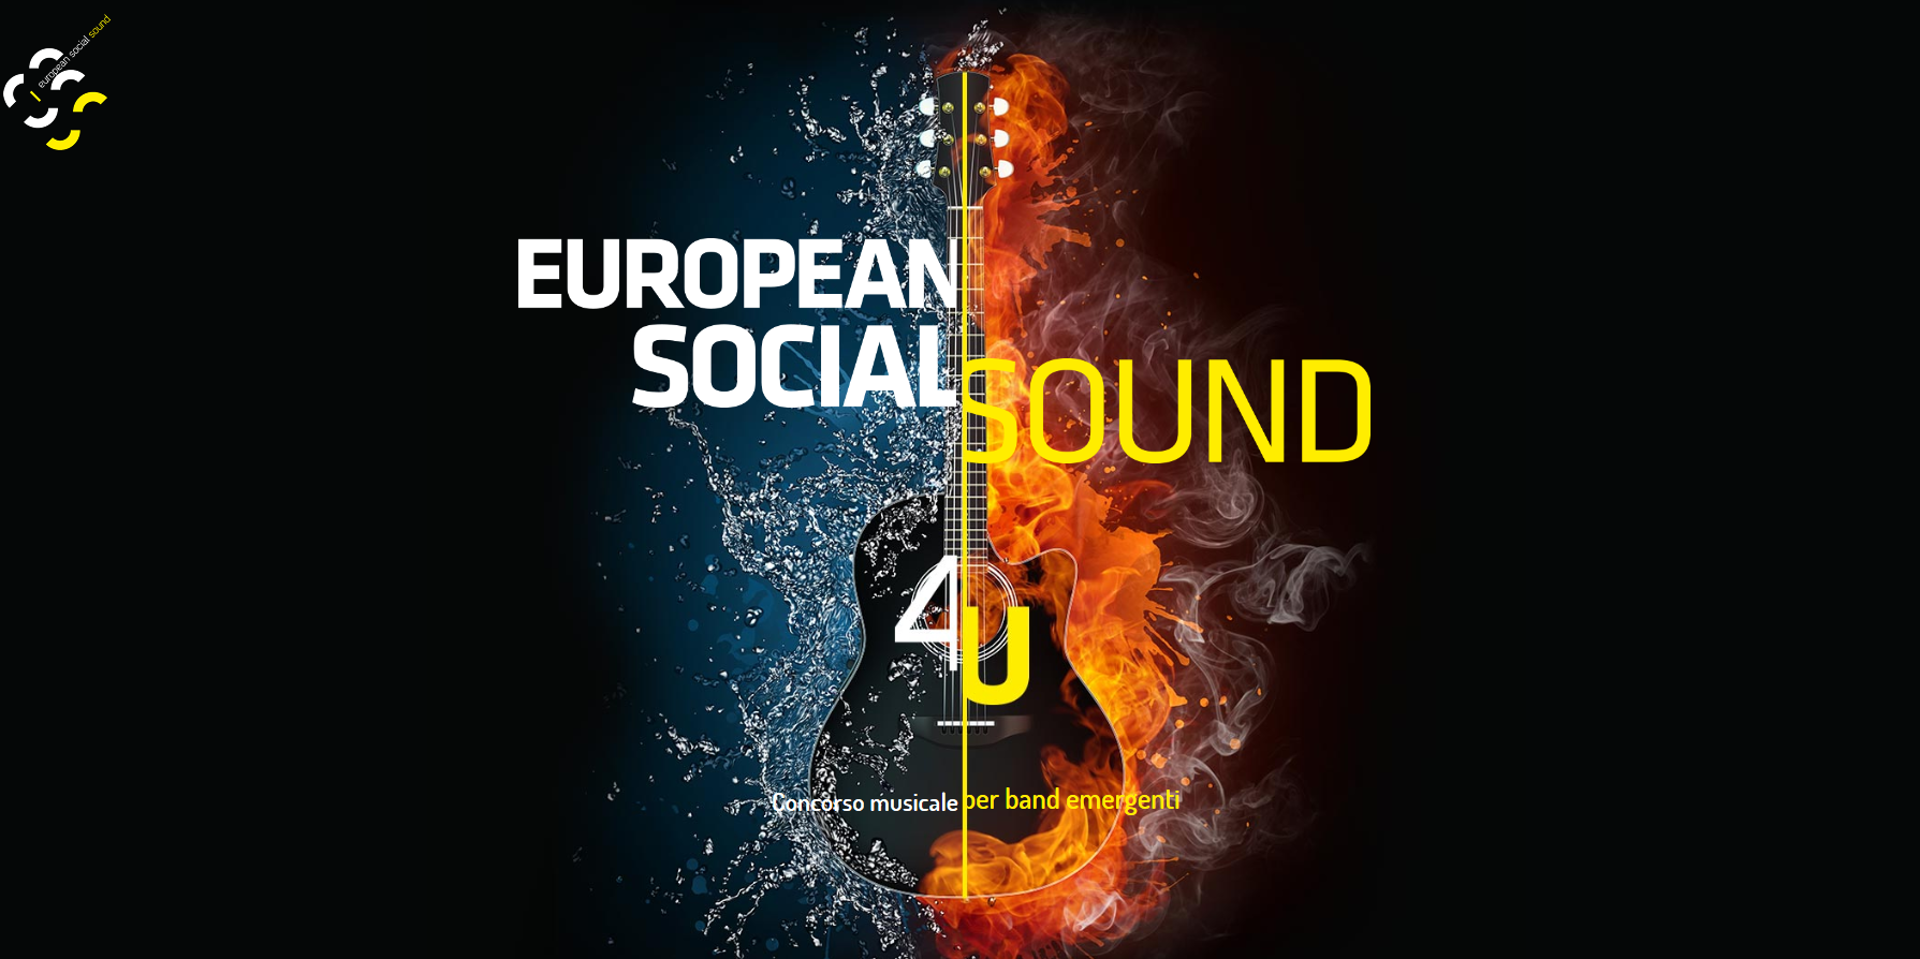 https://giovanisi.it/2019/06/25/giovanisi-e-fse-european-social-sound4u-premio-da-10-000-euro-per-band-emergenti/